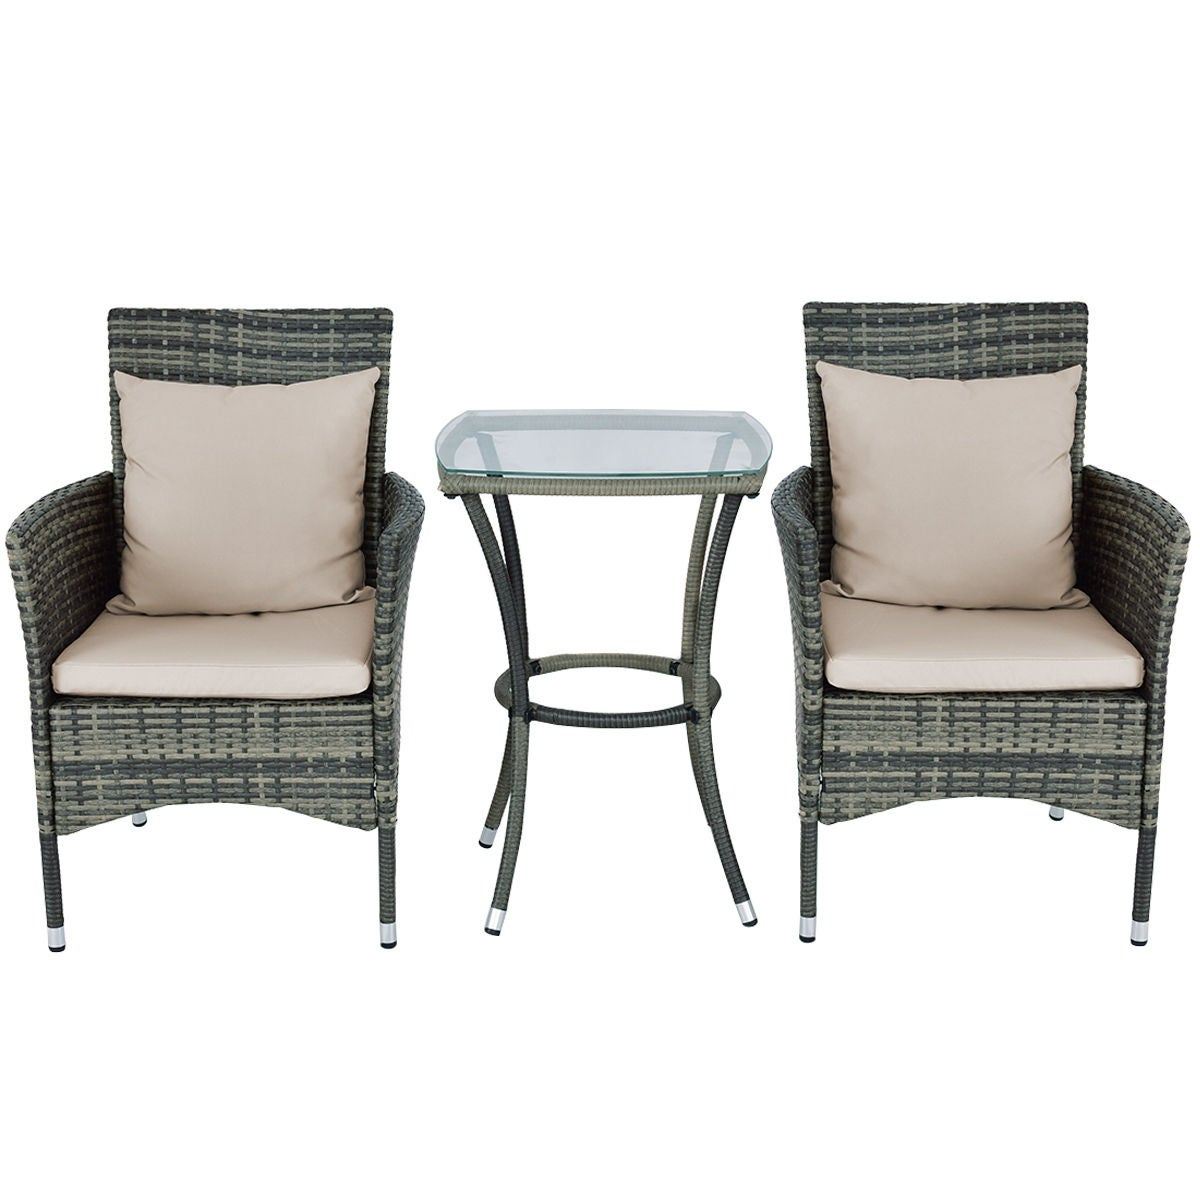 Costway 3PCS Patio Rattan Furniture Set Chairs & Table Garden Coffee ...